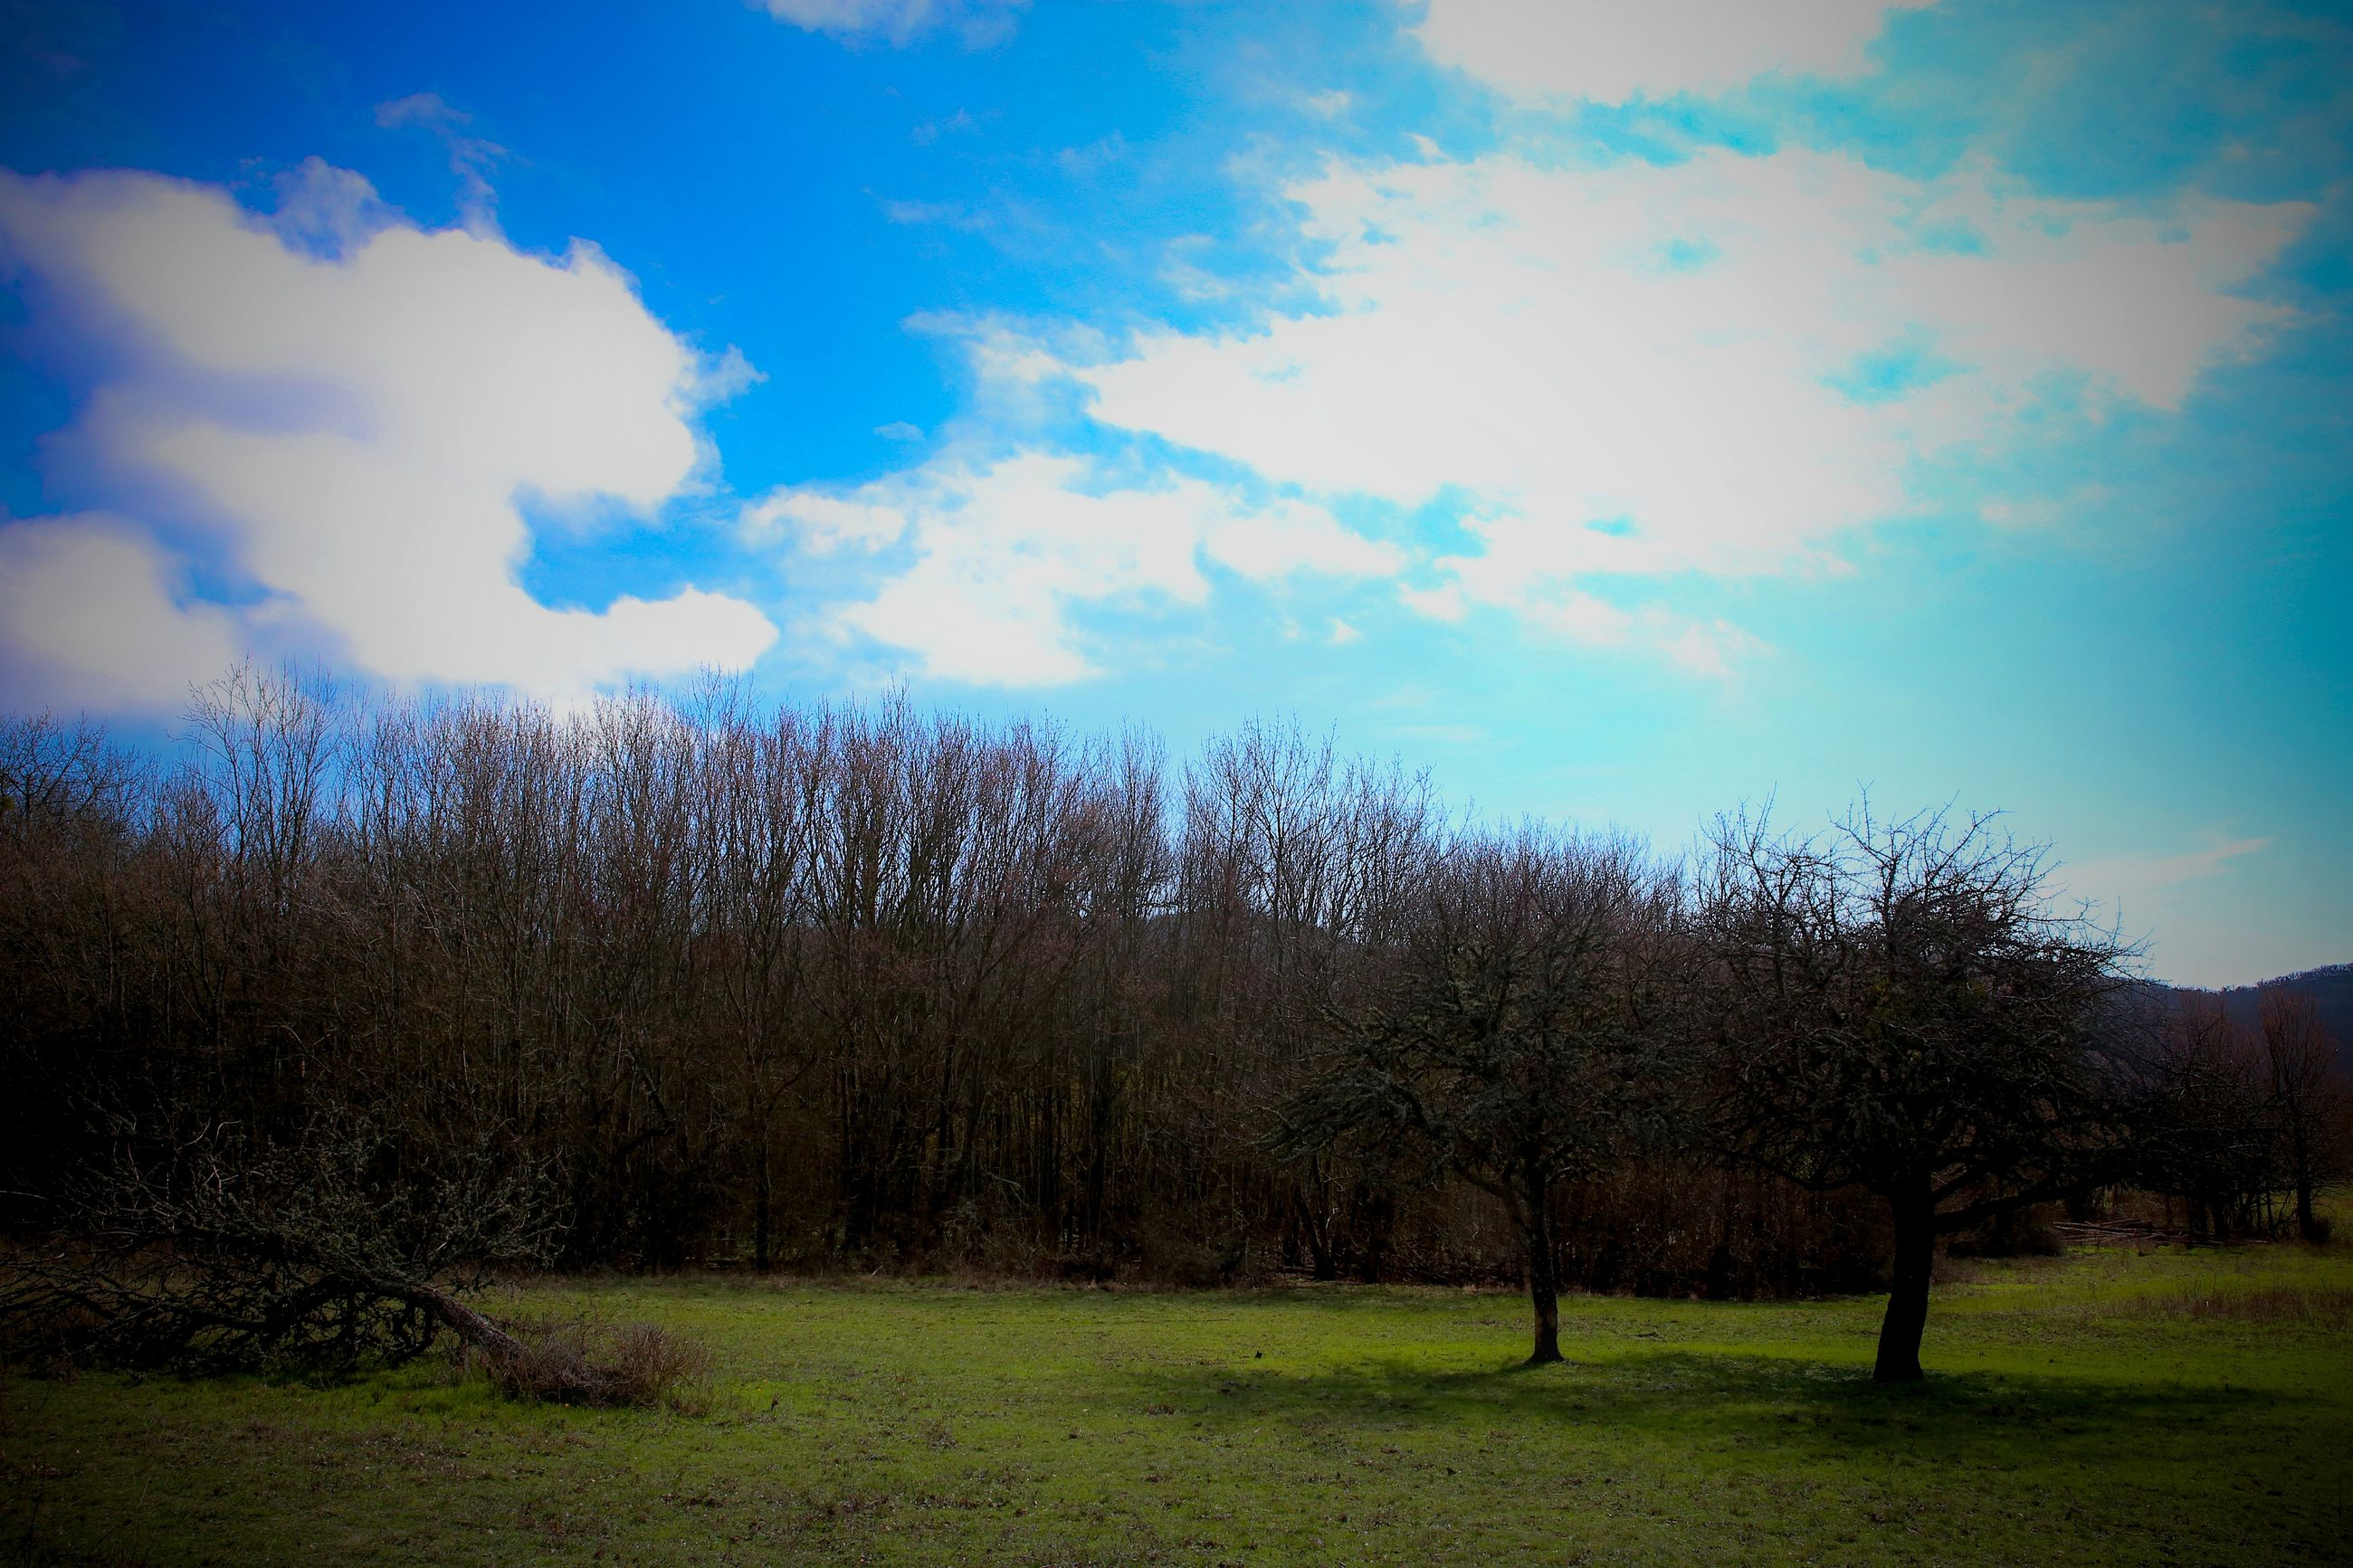 sky, cloud - sky, tree, nature, no people, outdoors, day, scenics, grass, beauty in nature, freshness